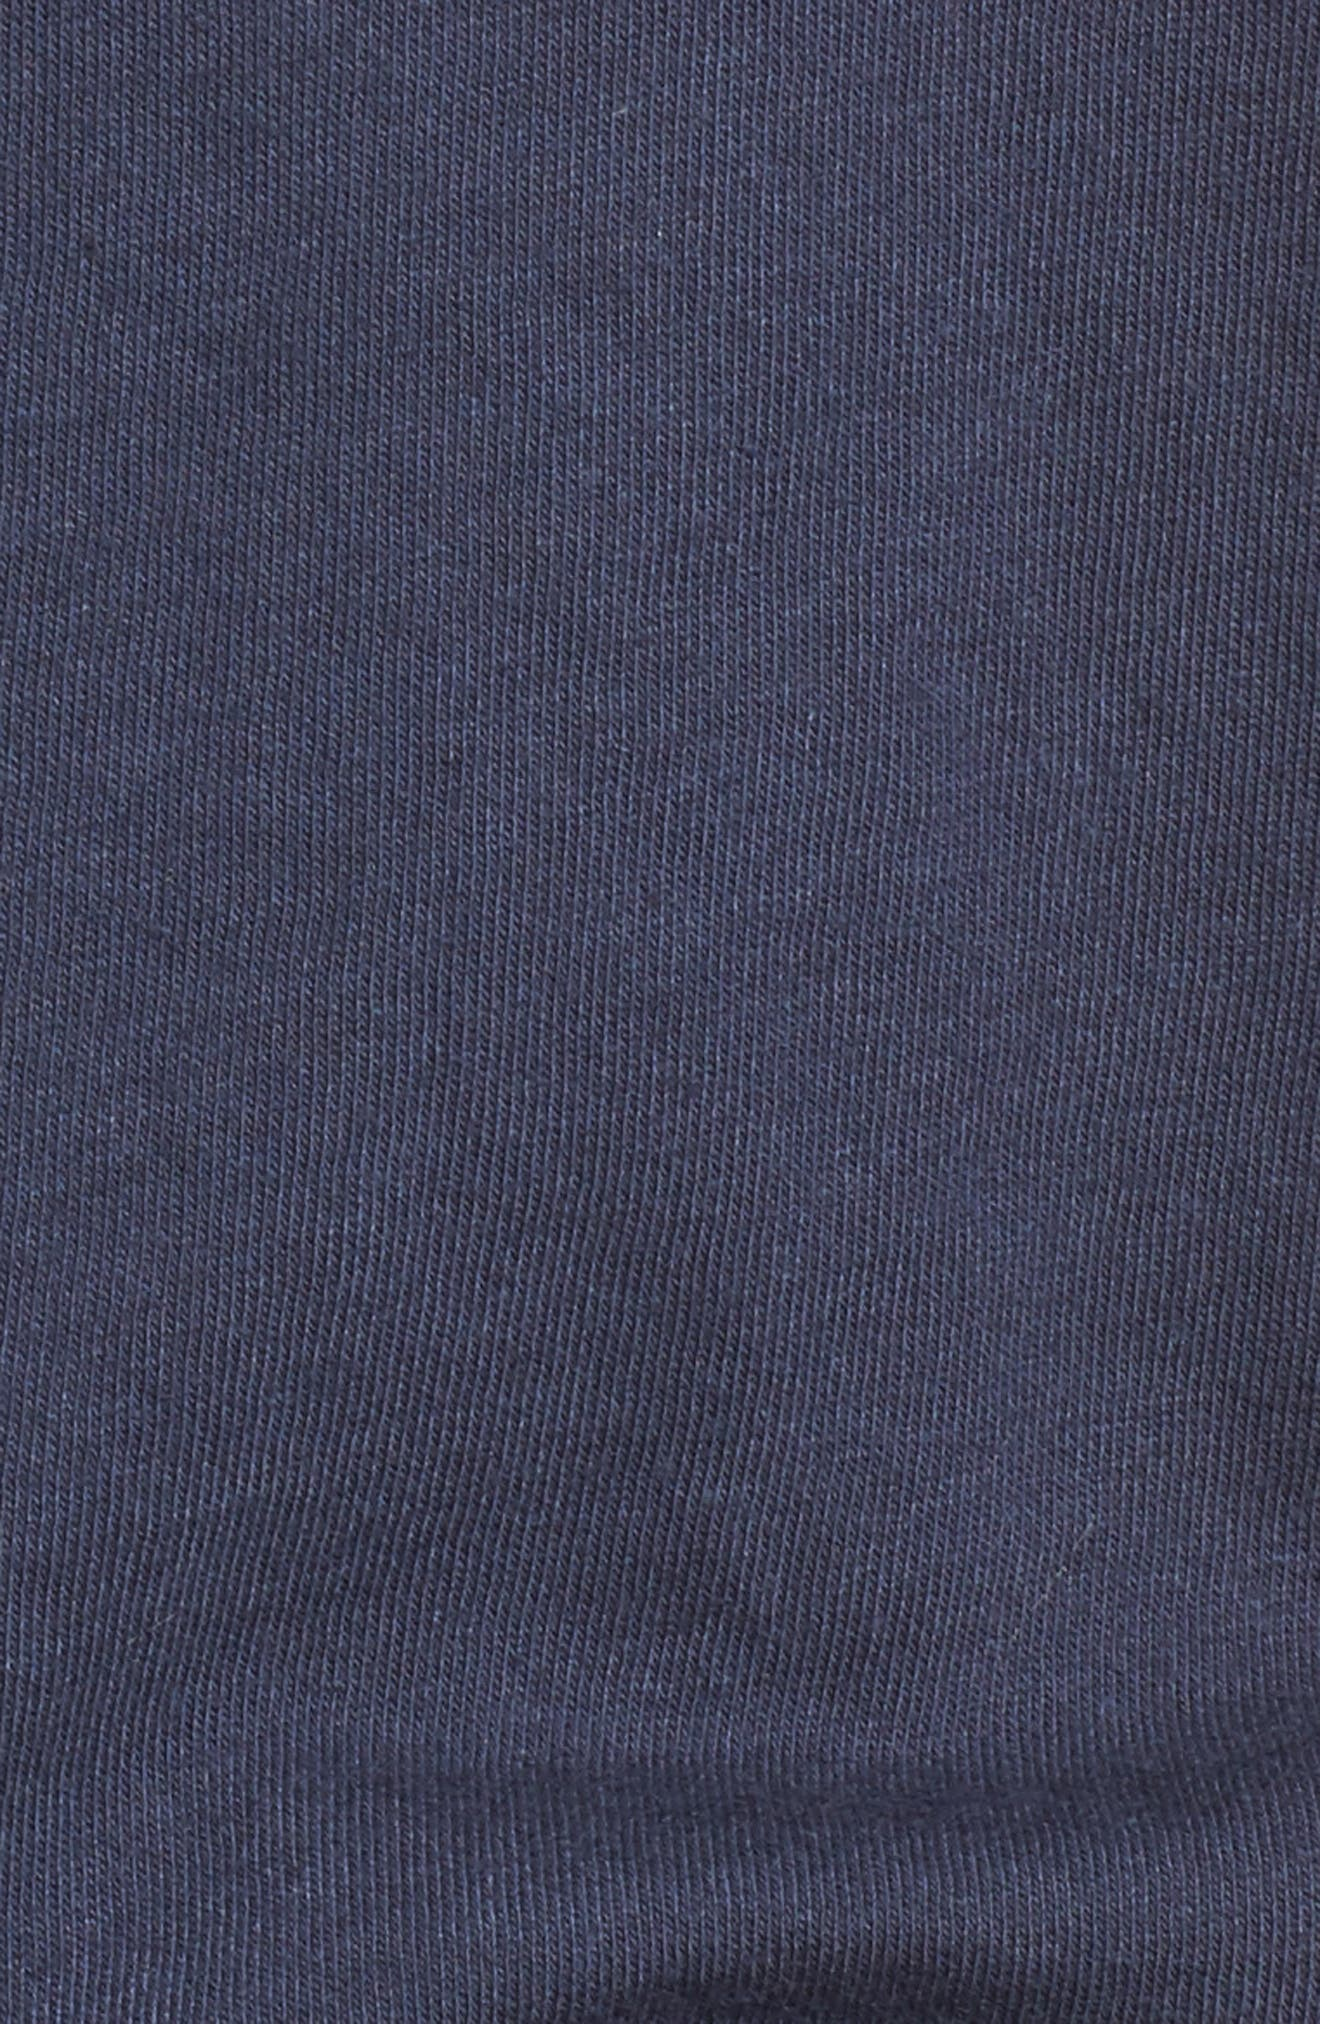 Pardon My French Fries Graphic Tee,                             Alternate thumbnail 5, color,                             Navy